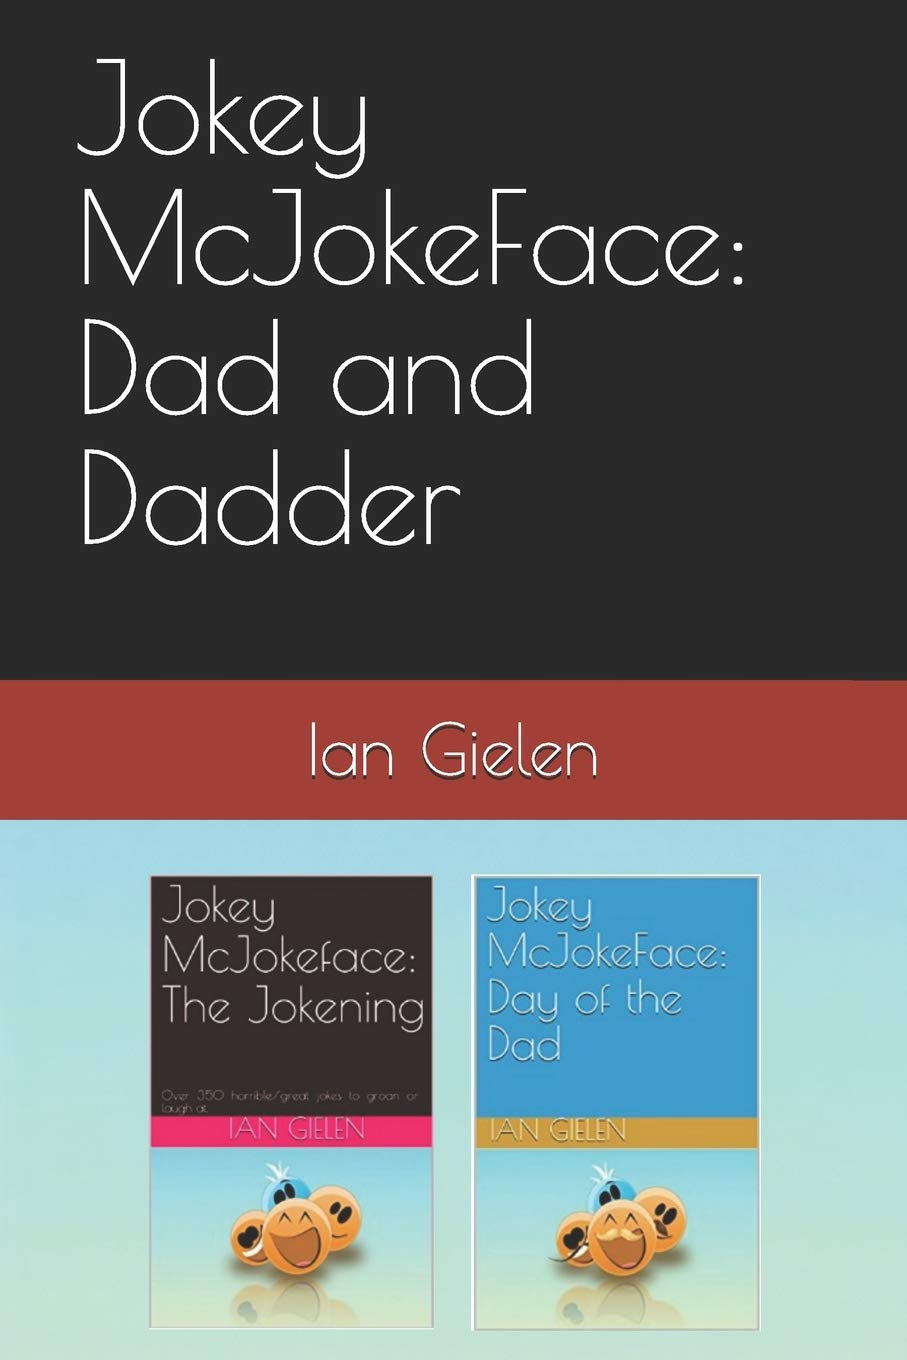 Download Jokey McJokeFace: Dad and Dadder: Over 700 jokes to stare blankly at pdf